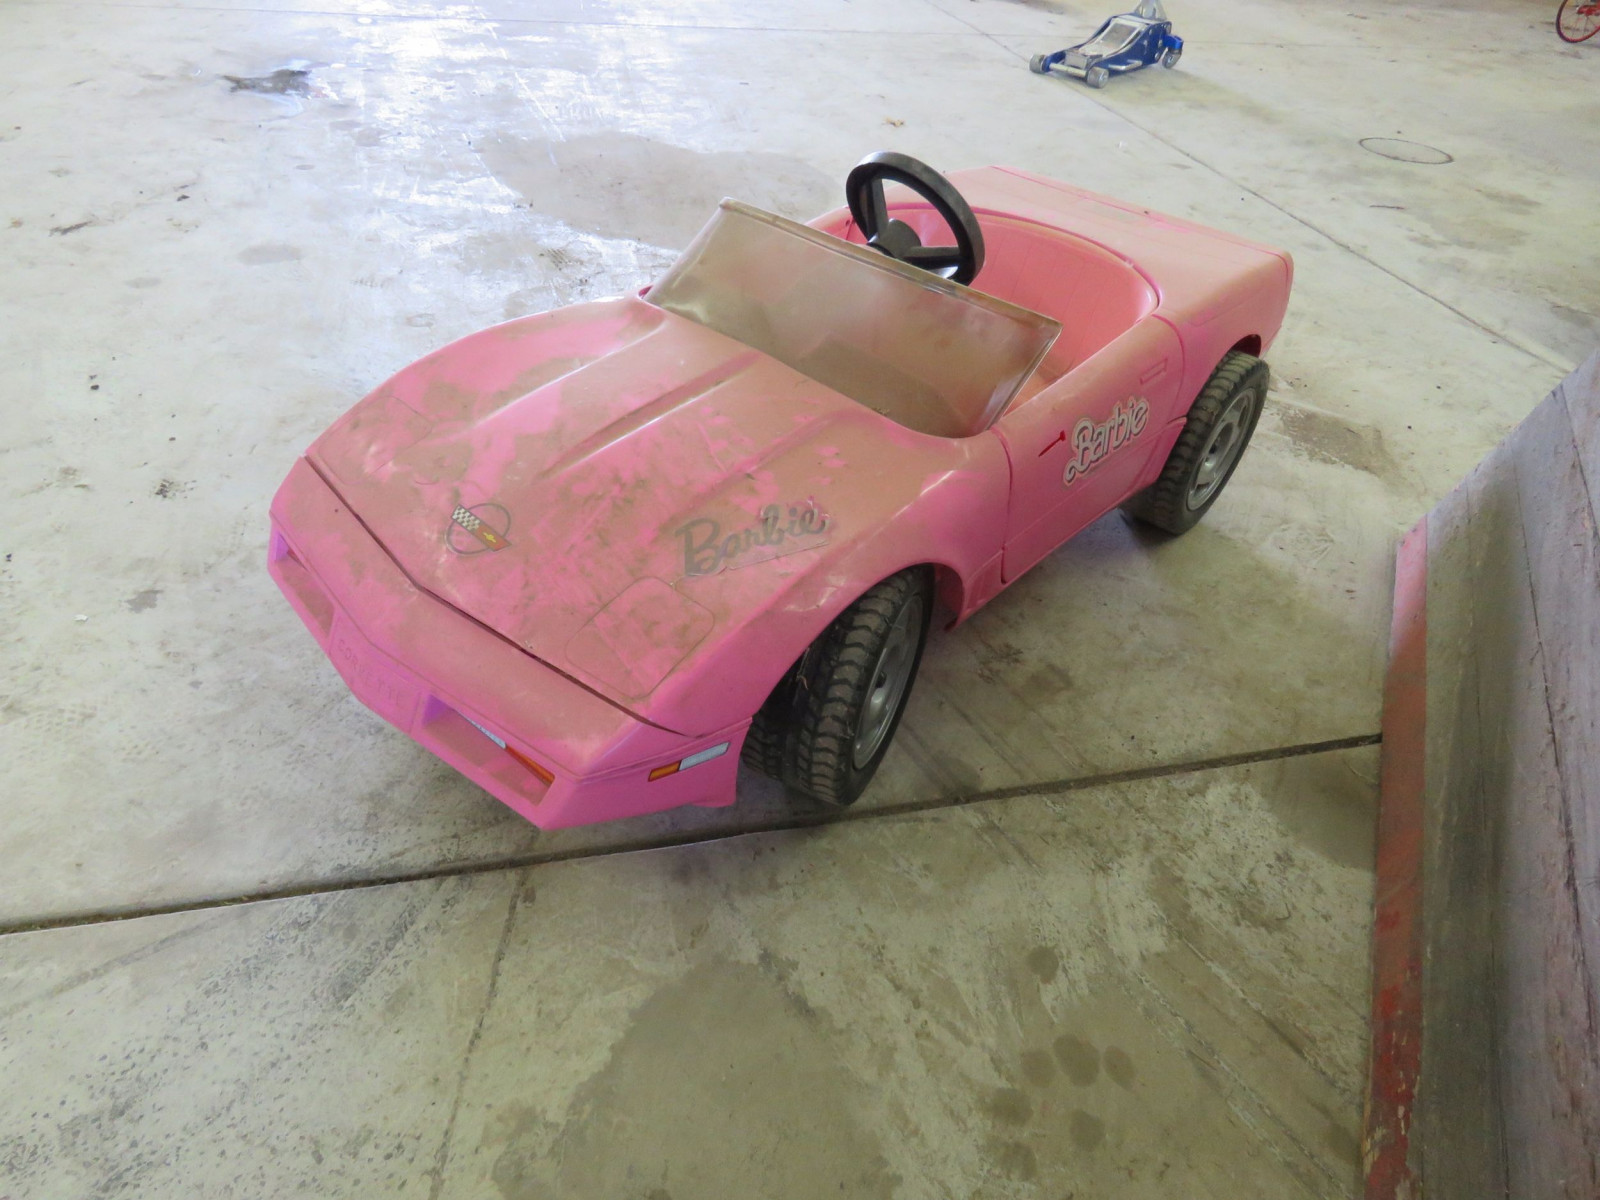 Corvette Plastic Barbie Car - Image 2